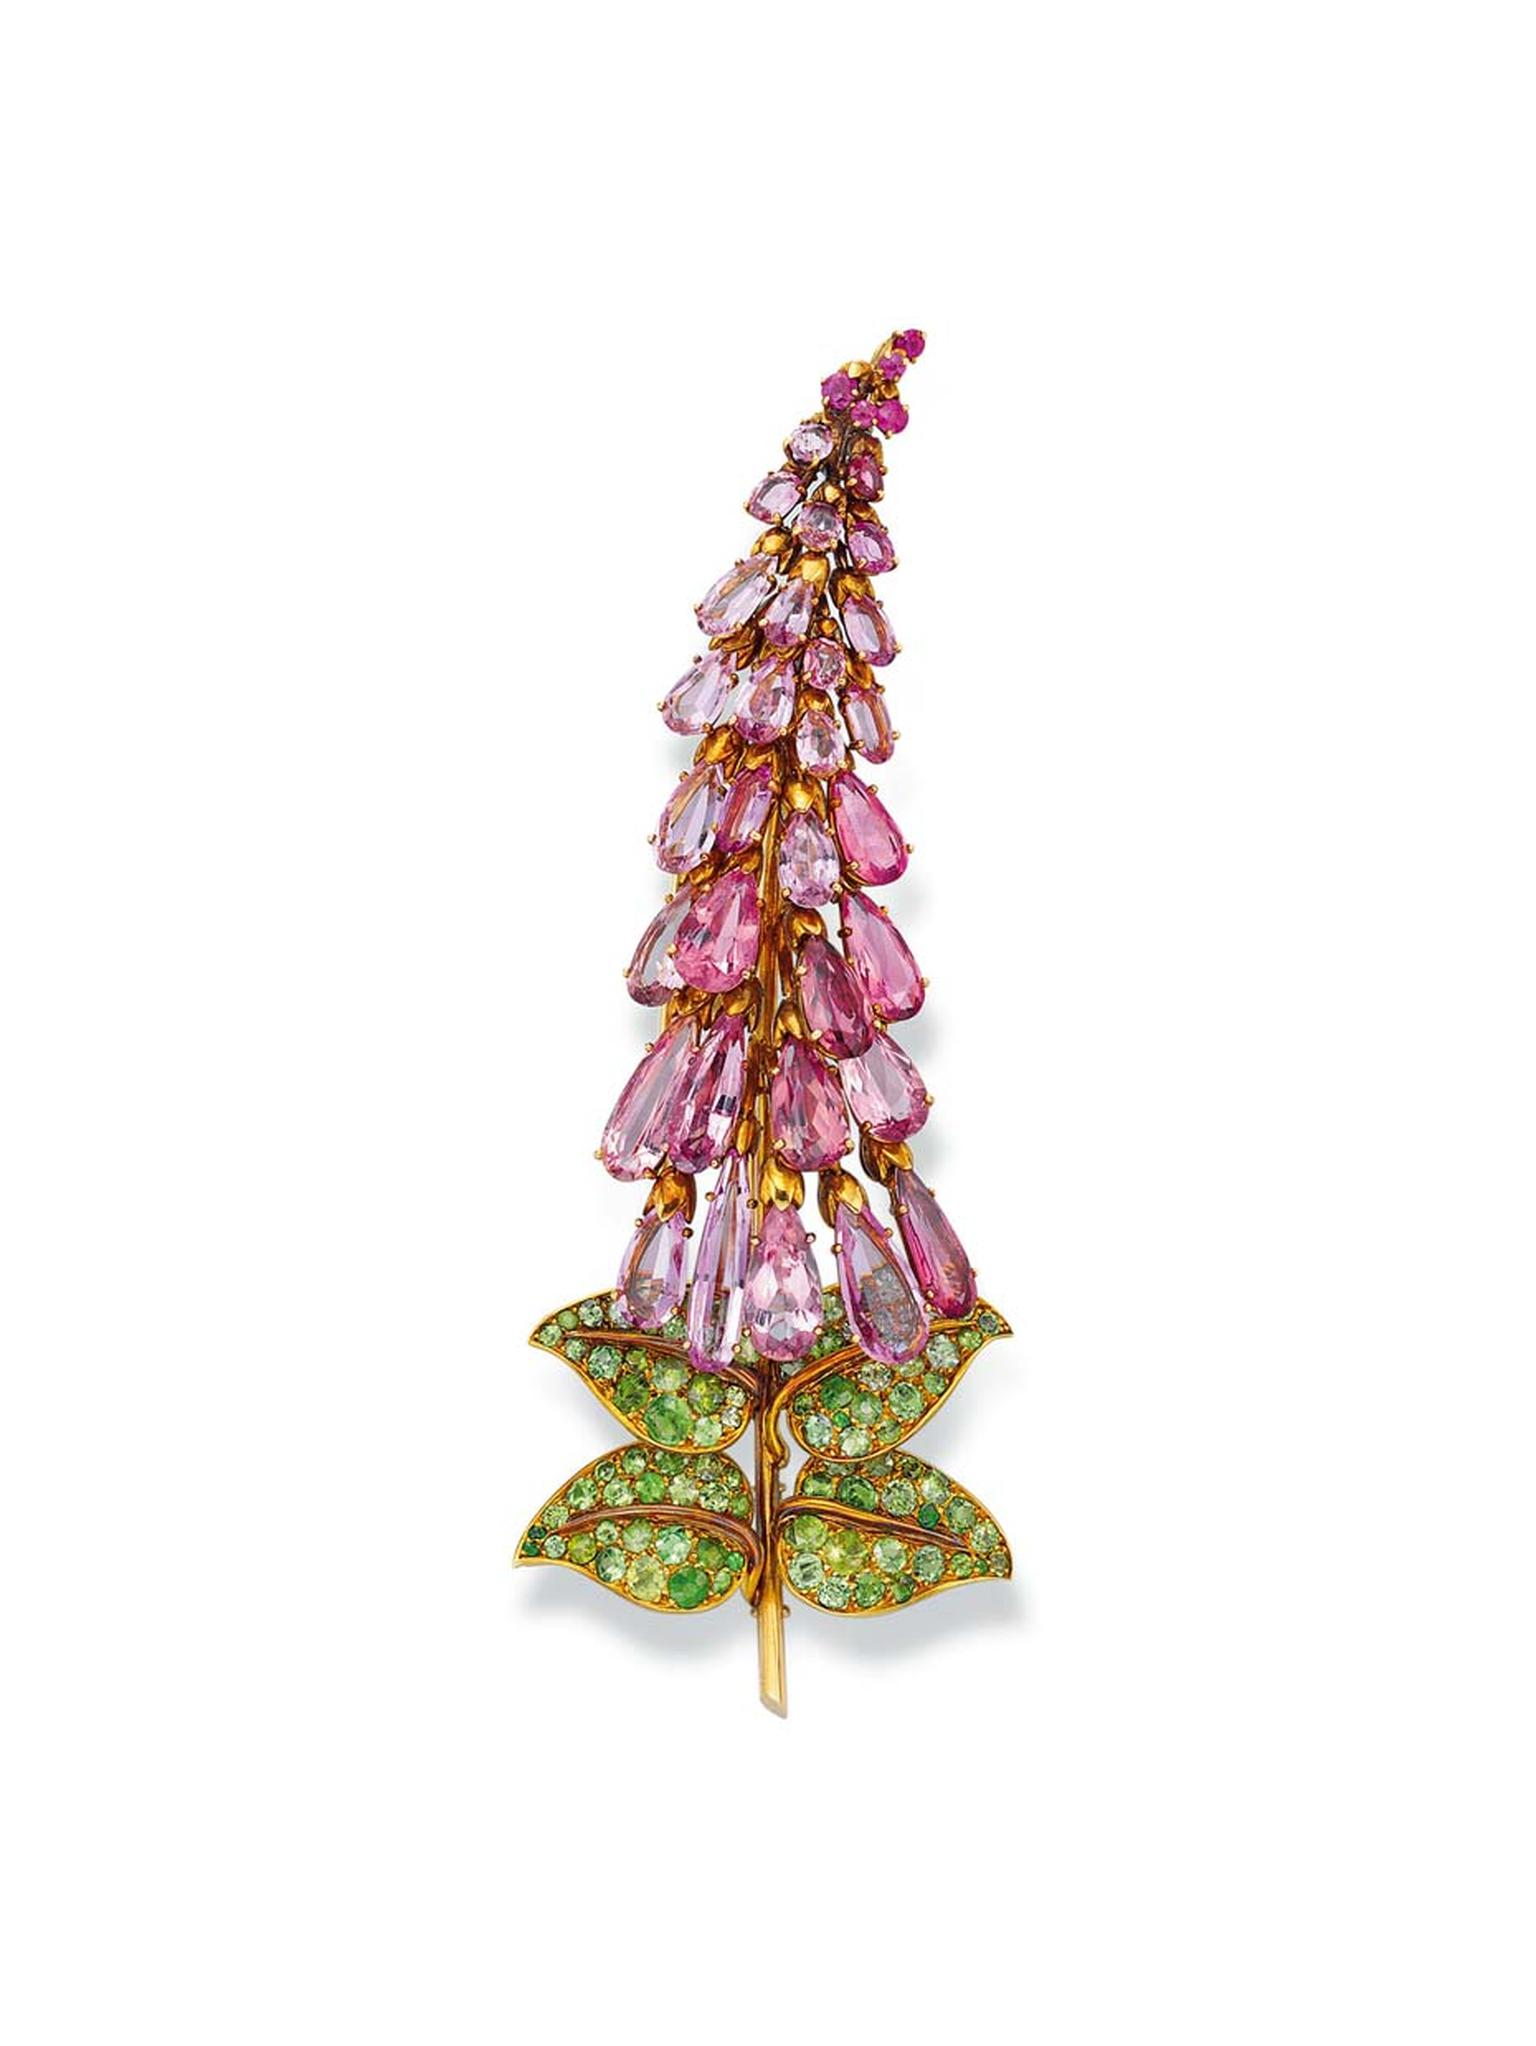 Boivin Foxglove brooch from 1944 with tourmalines and emeralds © Christie's Images Limited.